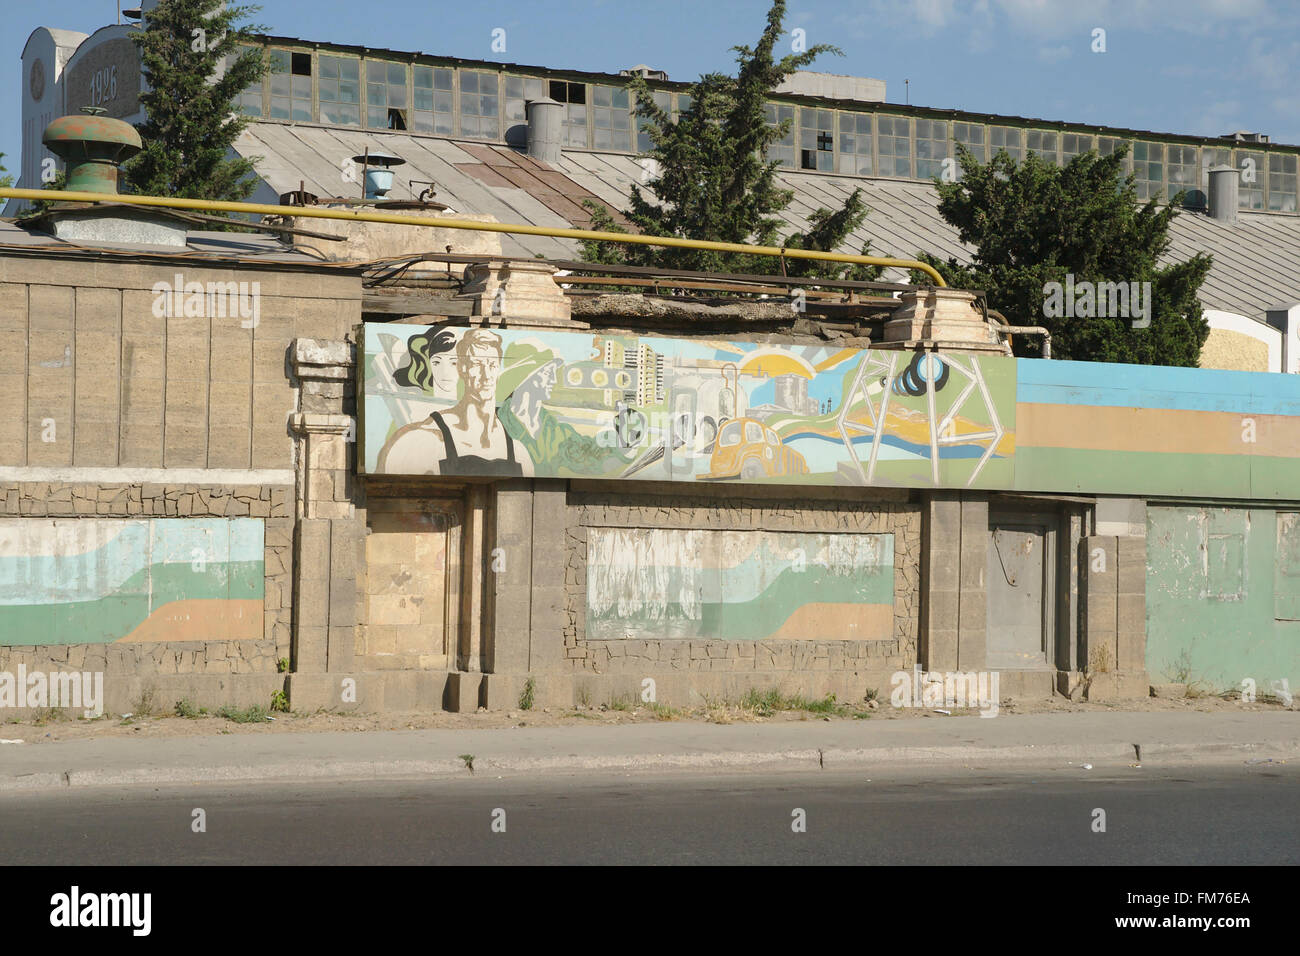 Socialist art in the former petrolchemistry of Sumqayit, Azerbaijan - Stock Image